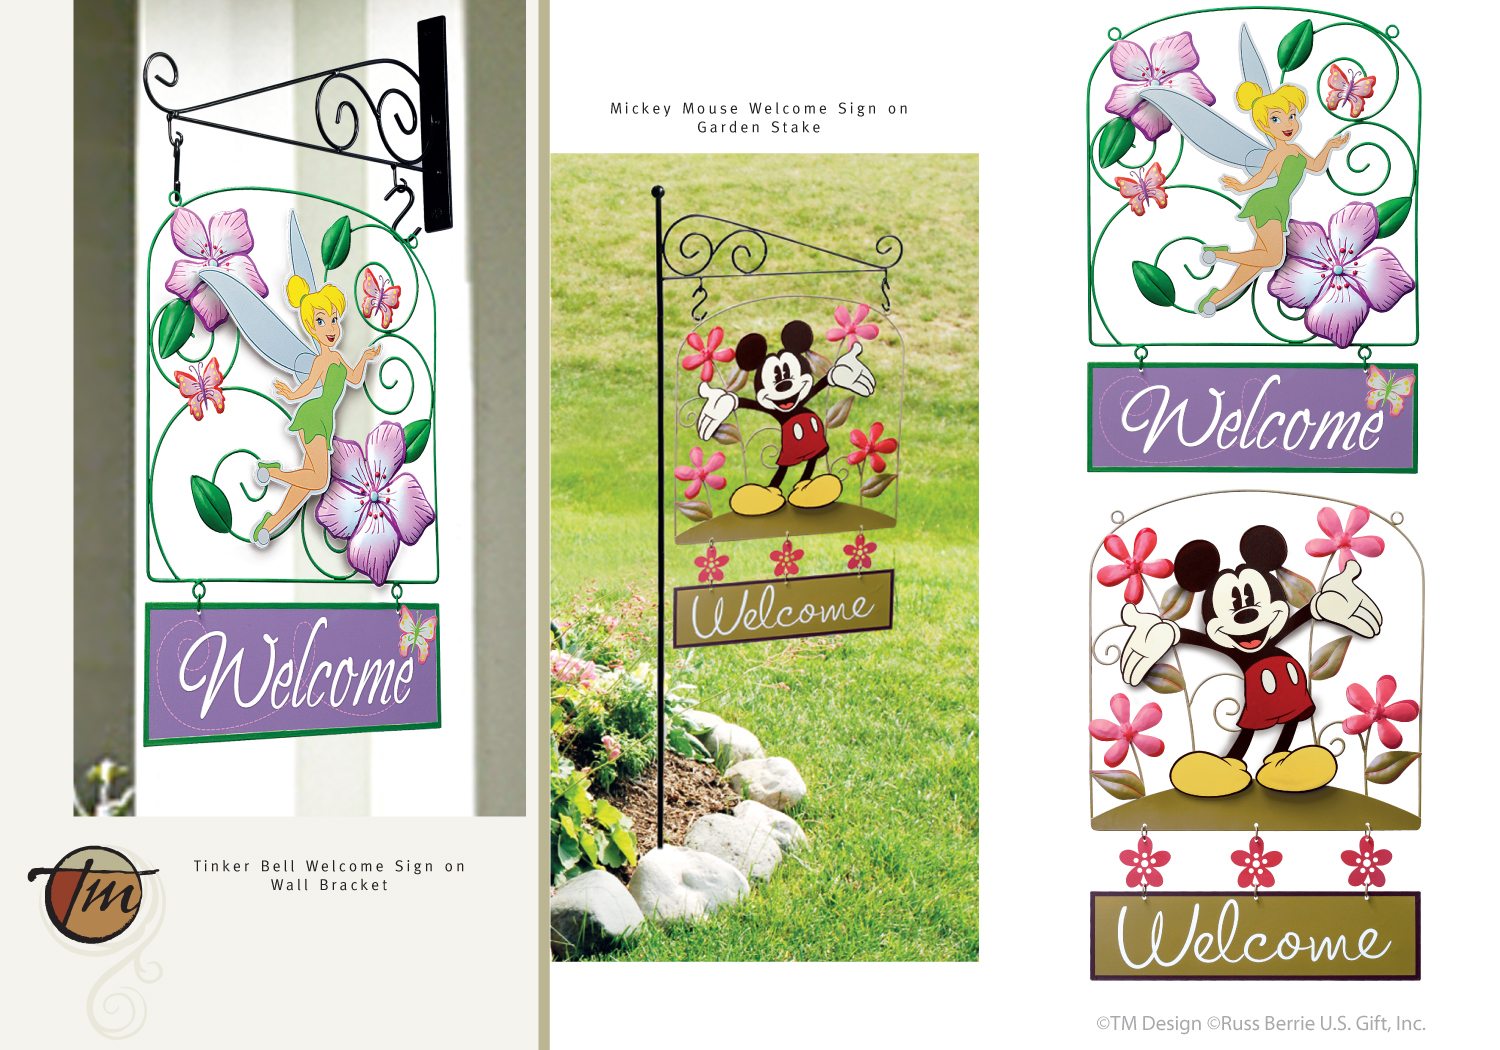 Garden Giftware Design by Tracy Mikesell at Coroflotcom